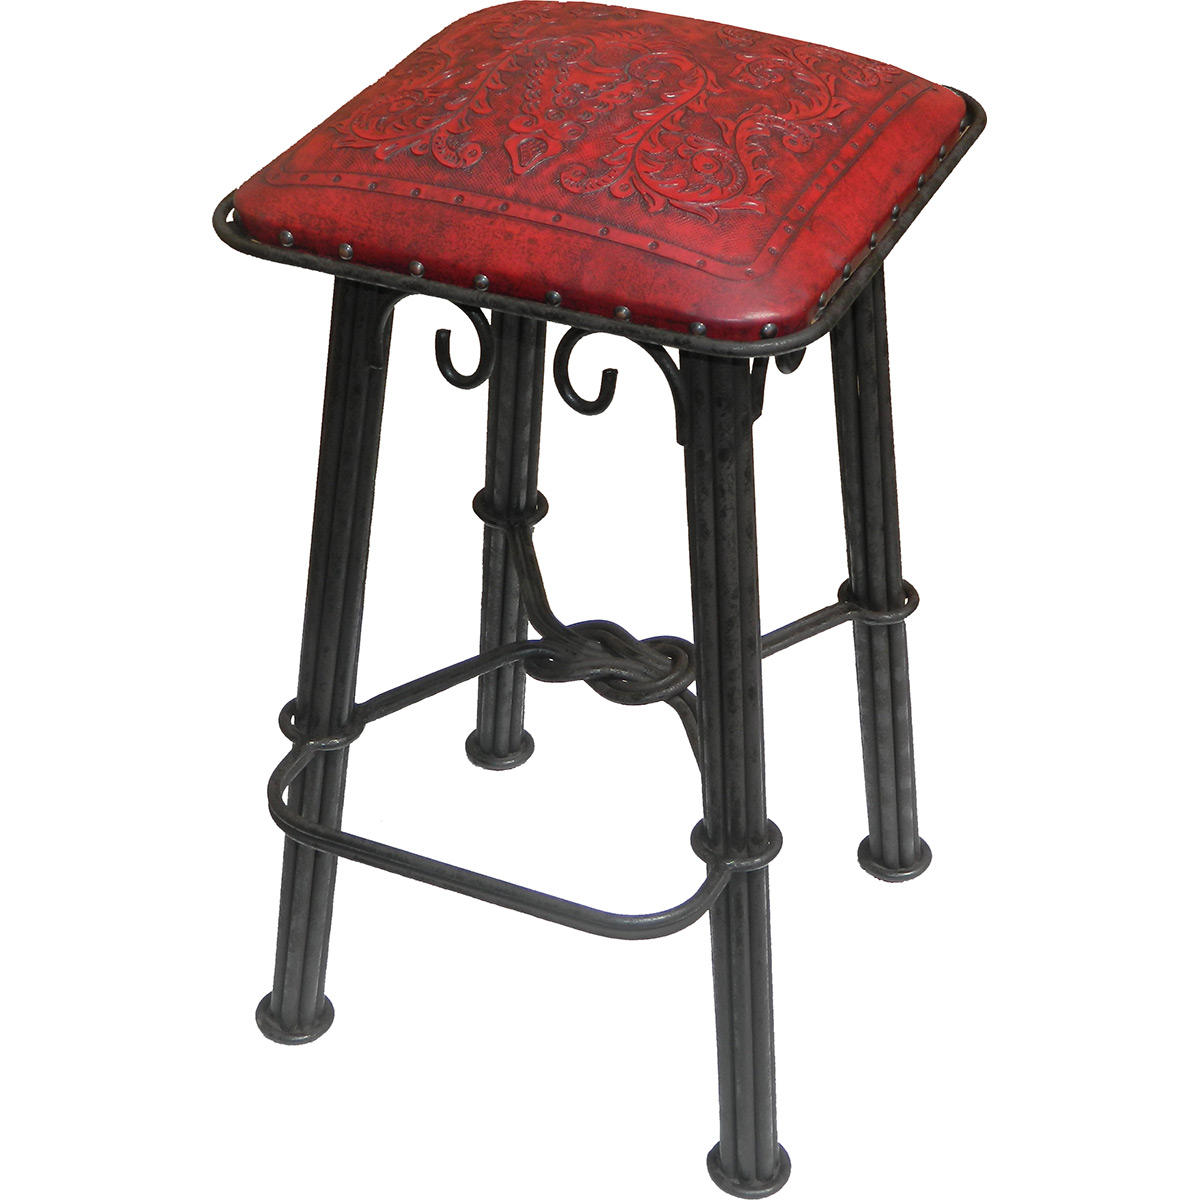 Western Iron Counter Stool - Colonial Red